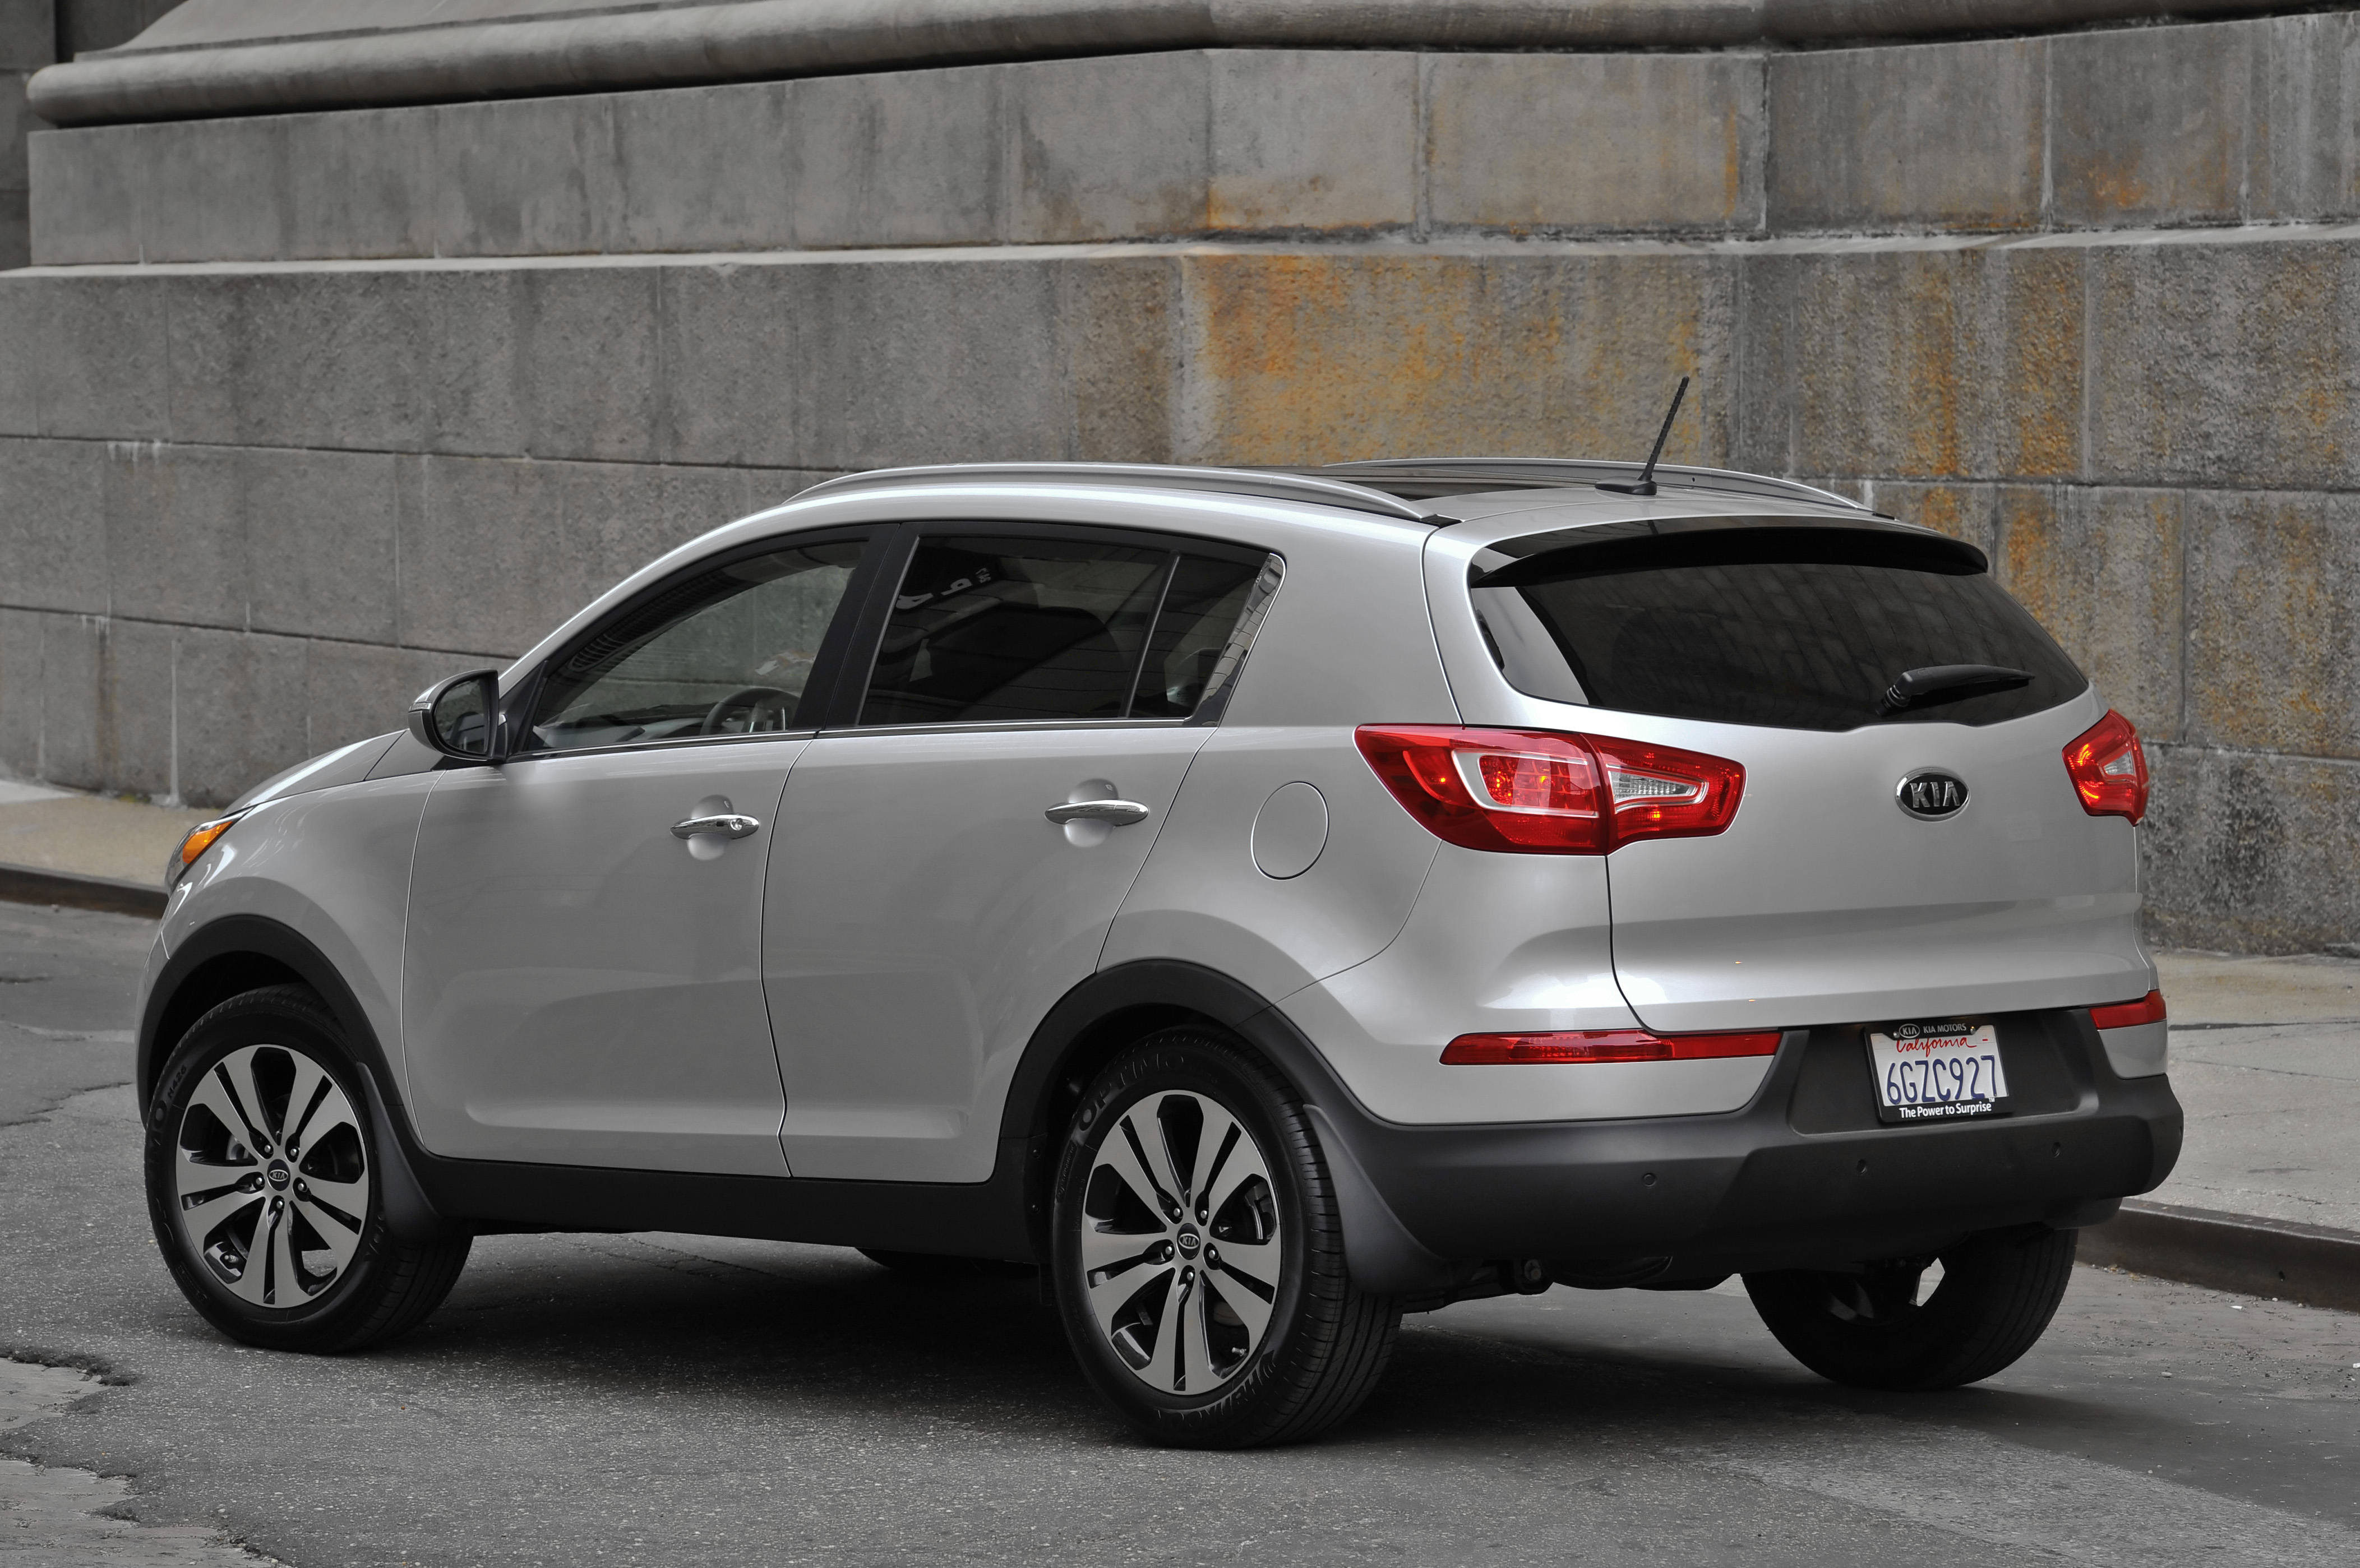 images msrp sportage news with reviews kia ratings amazing